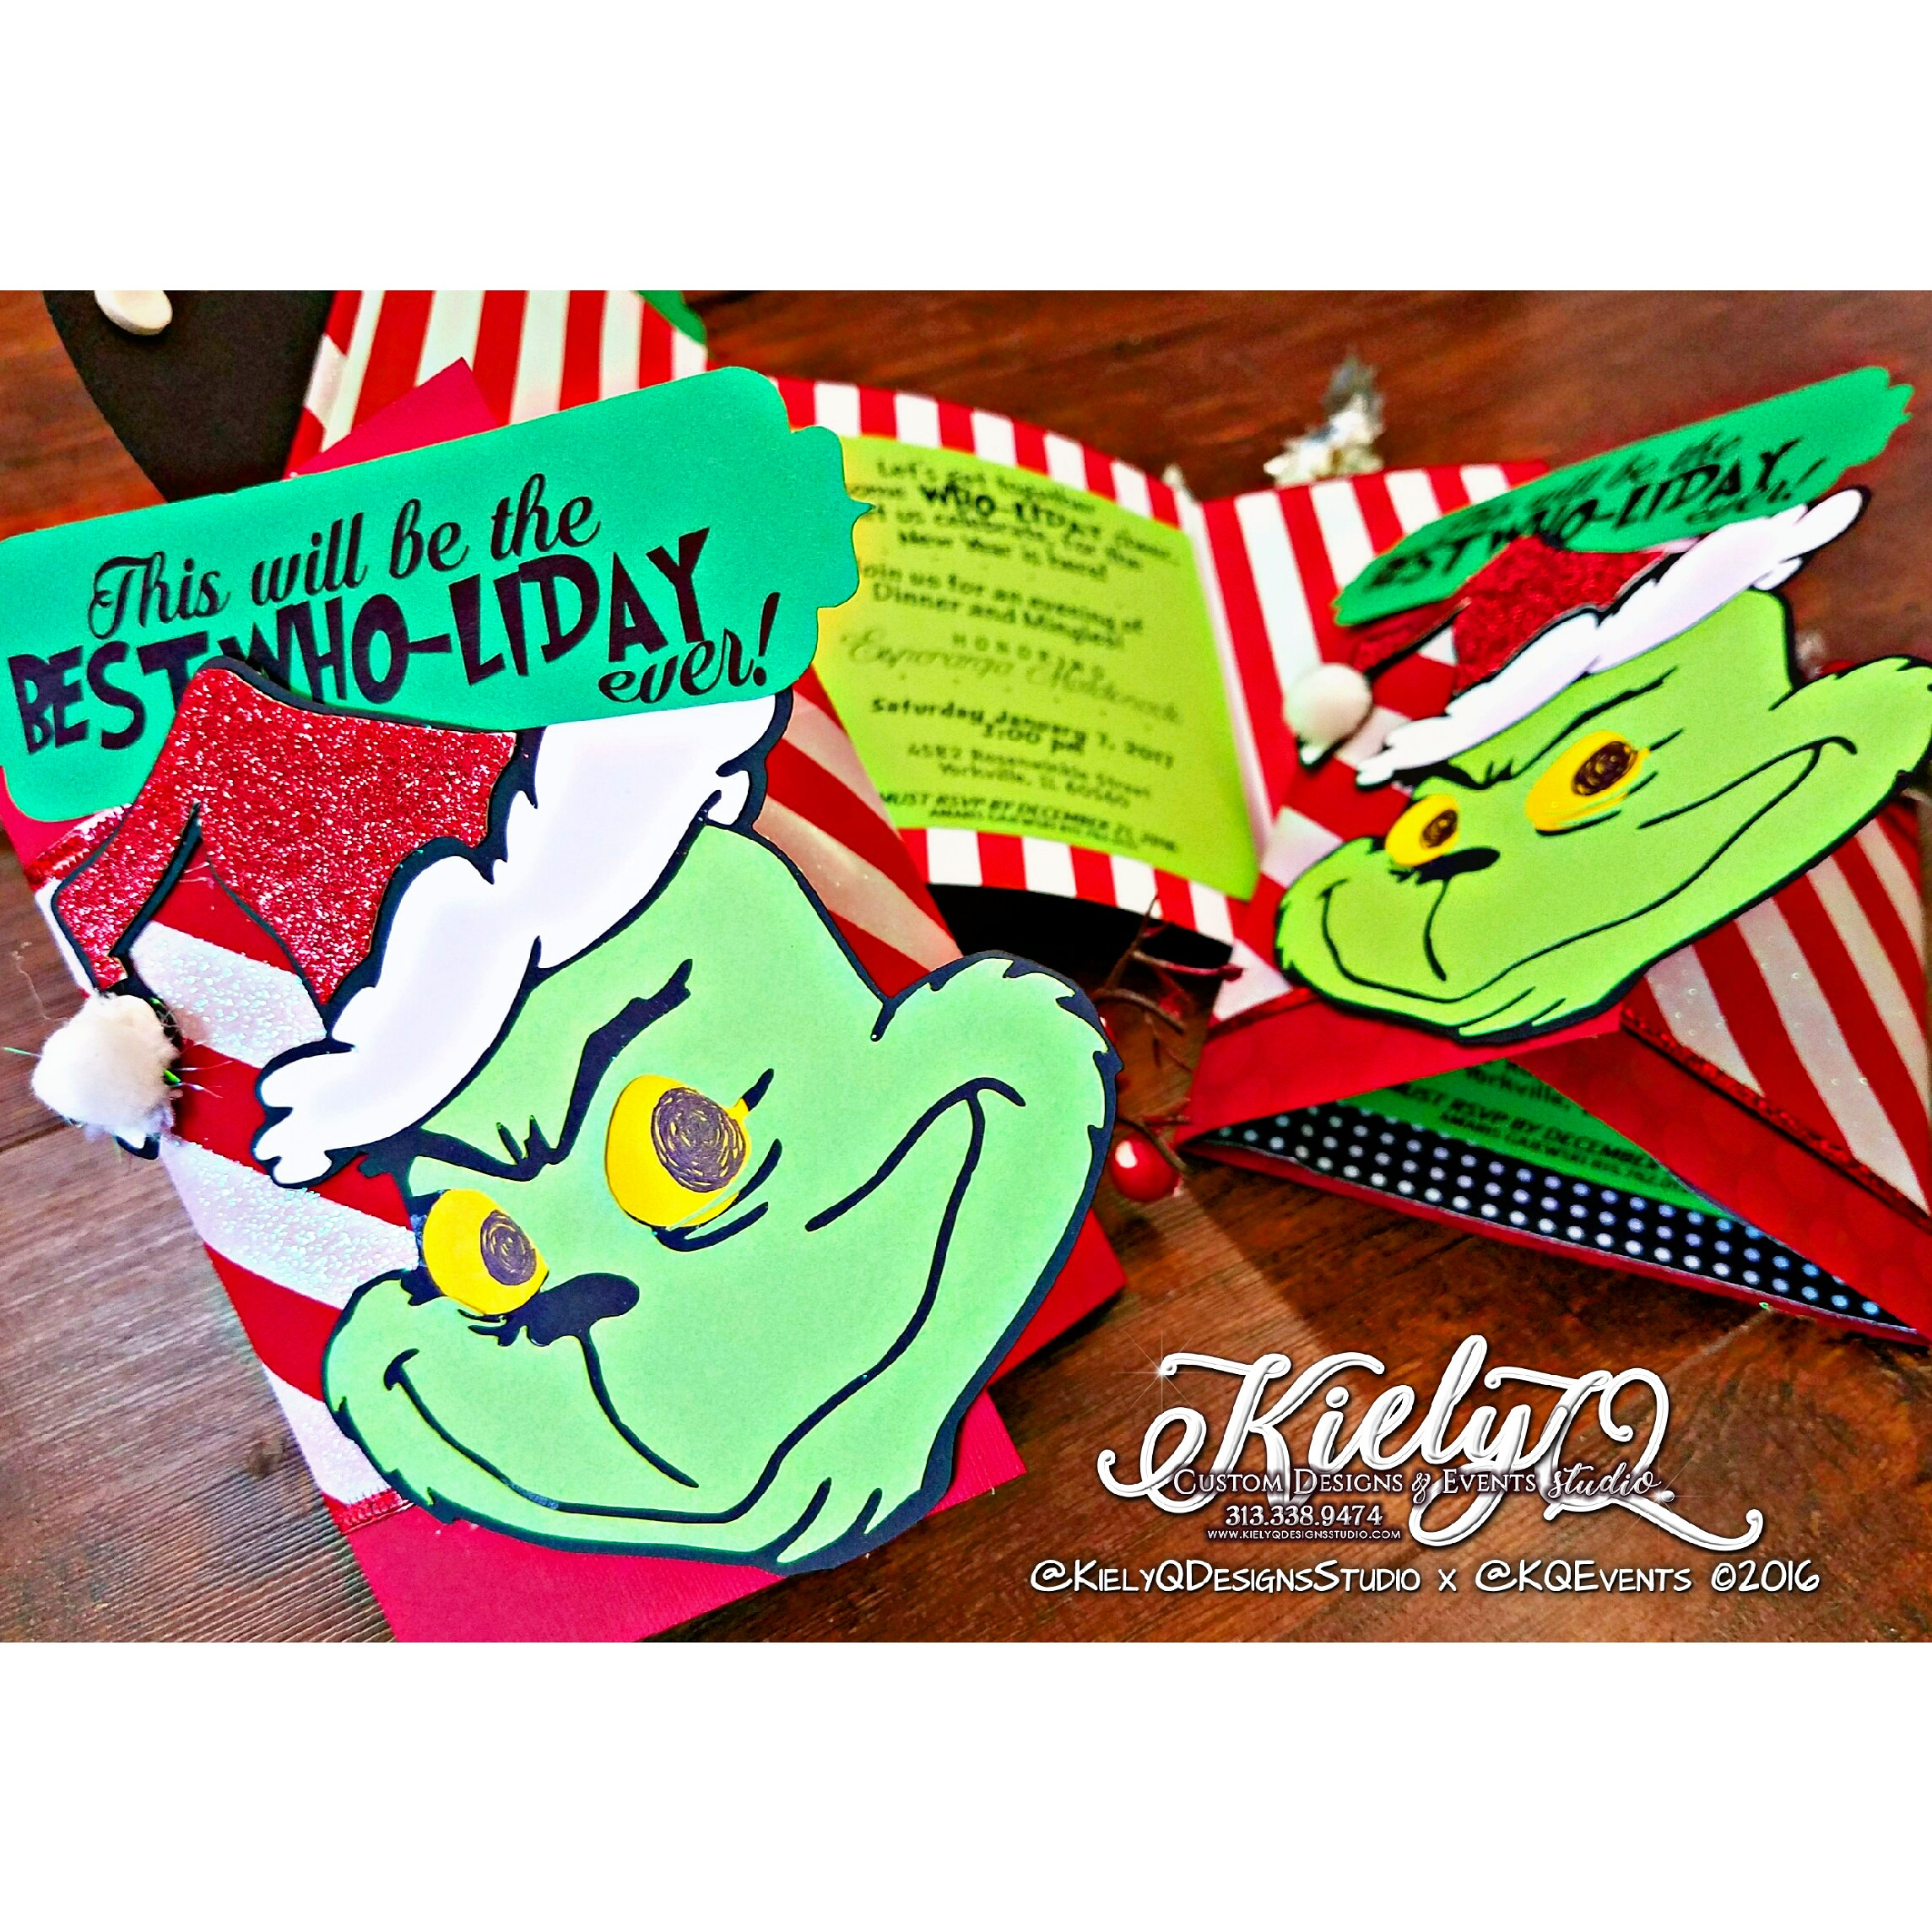 Grinch-mas Holiday Invites